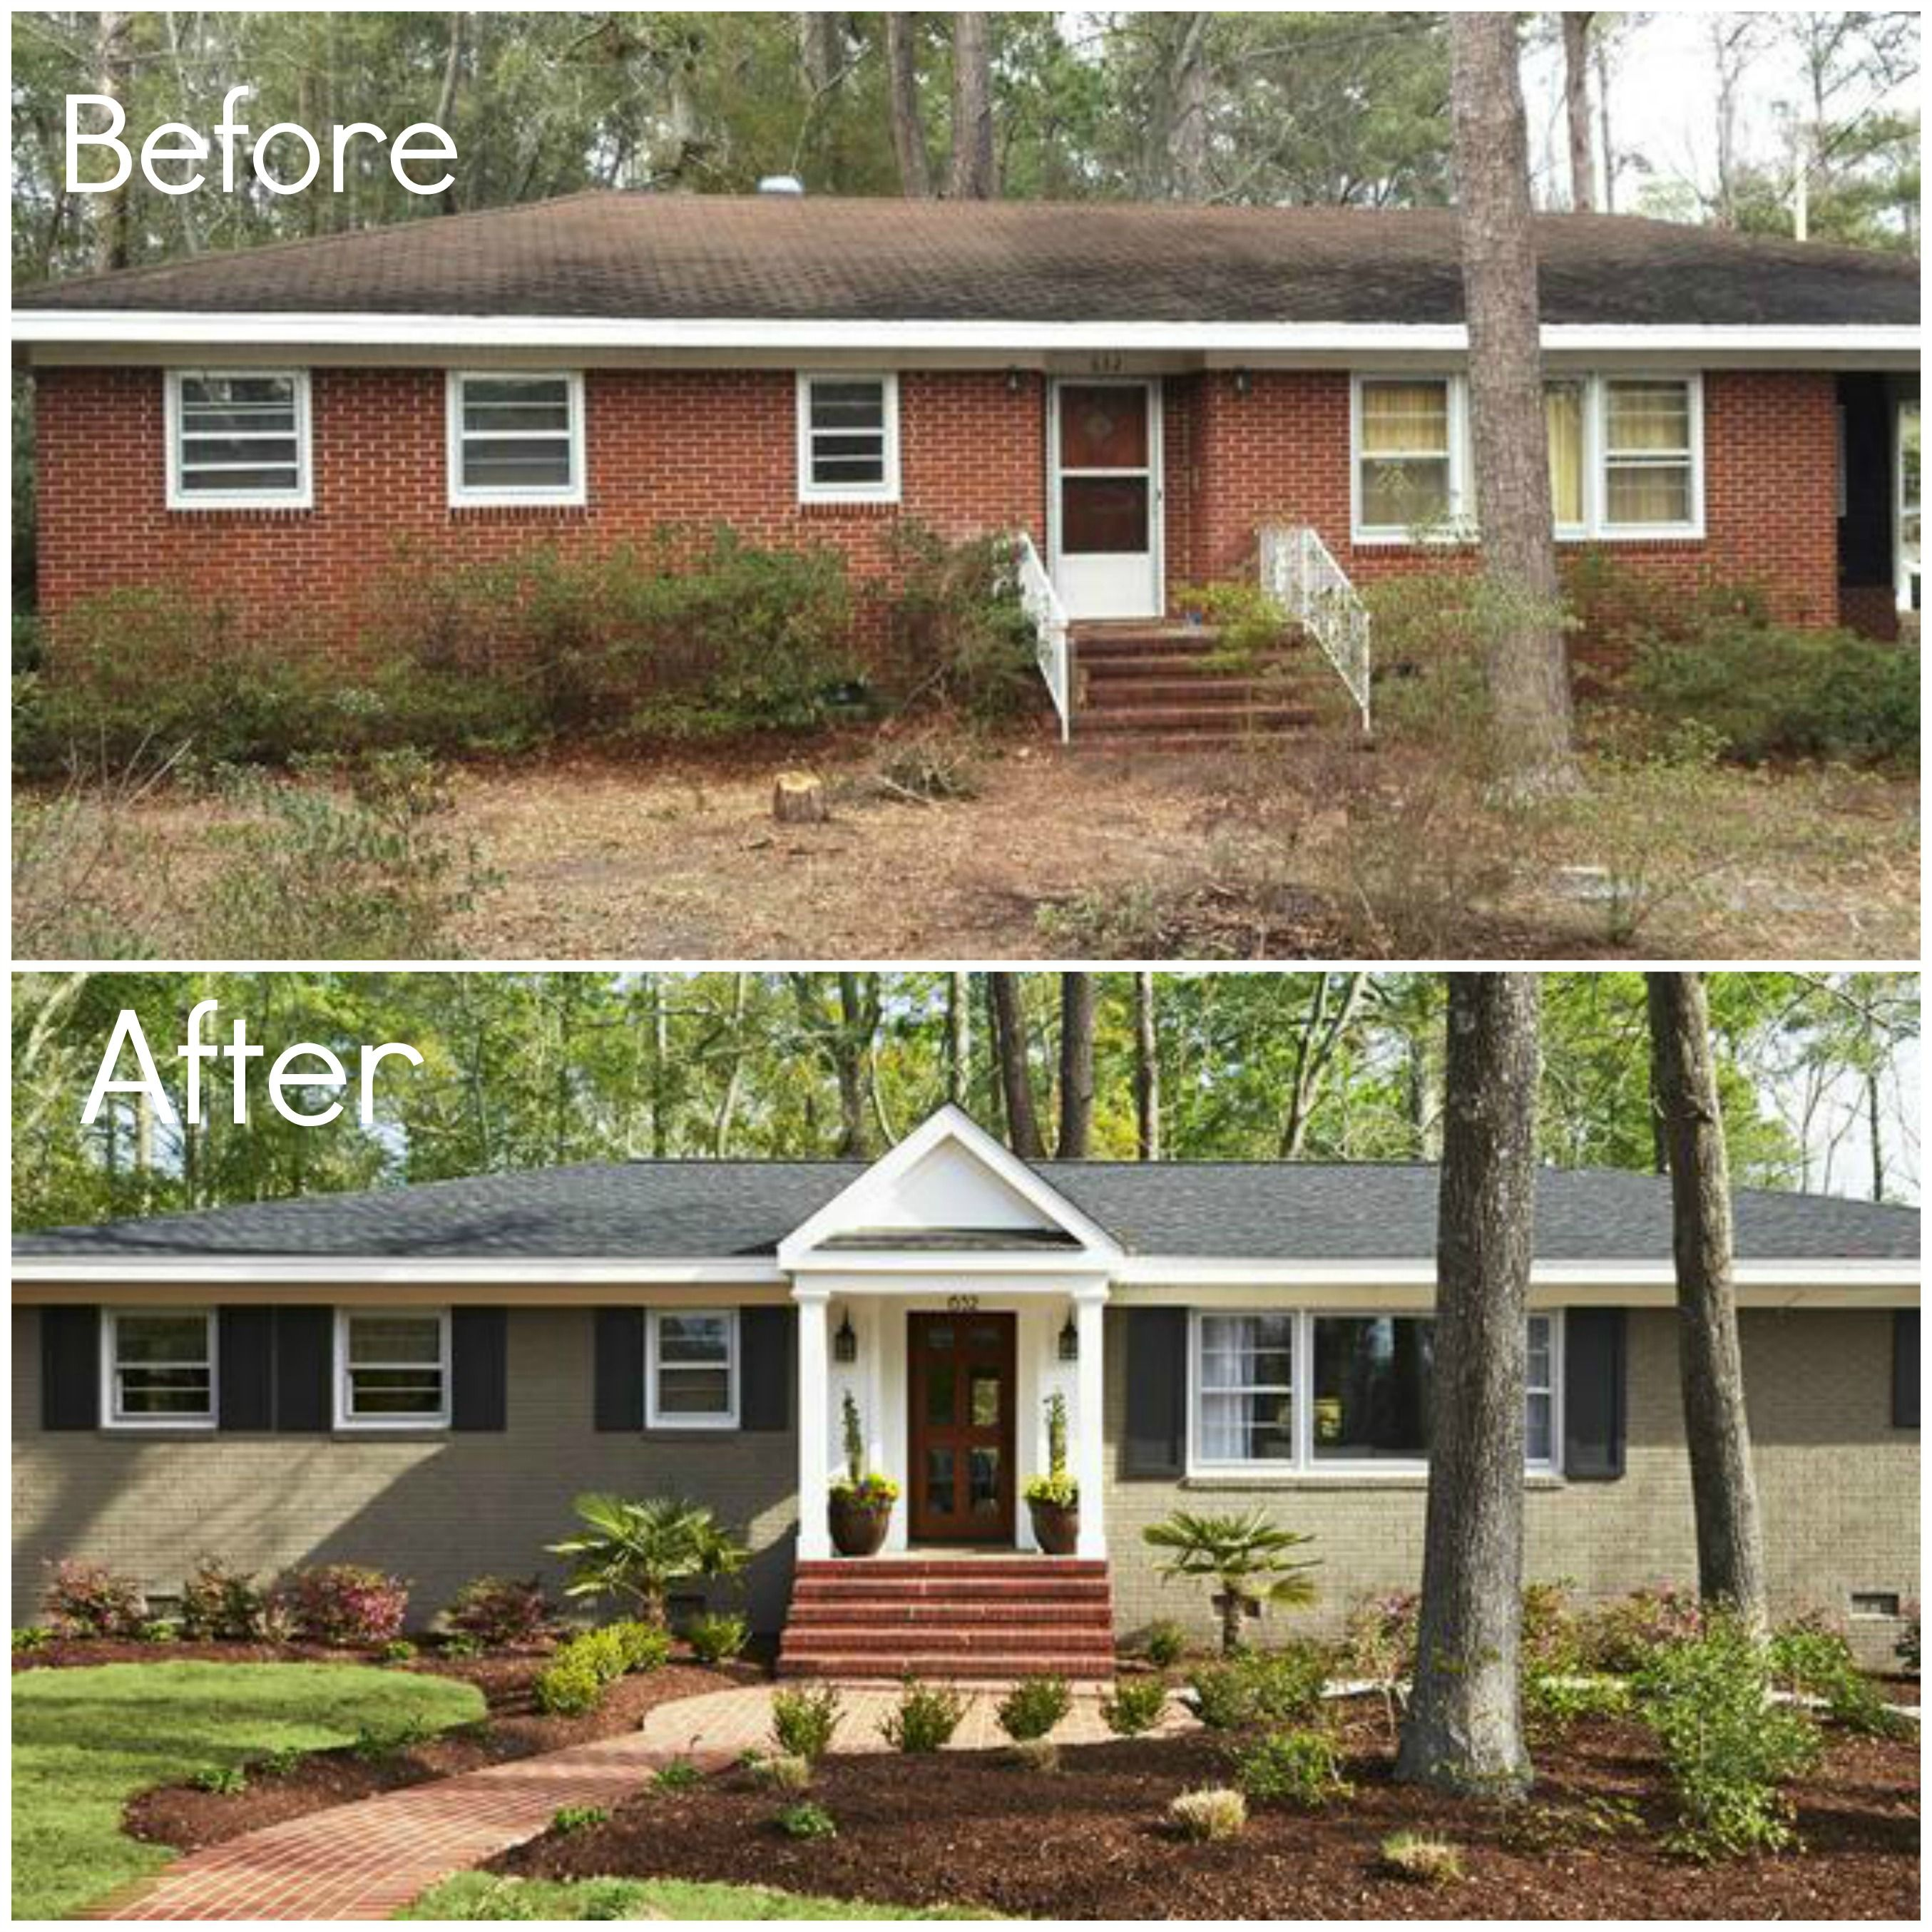 Before and after brick ranch home exterior pinterest brick ranch bricks and home renovation House transformations exterior